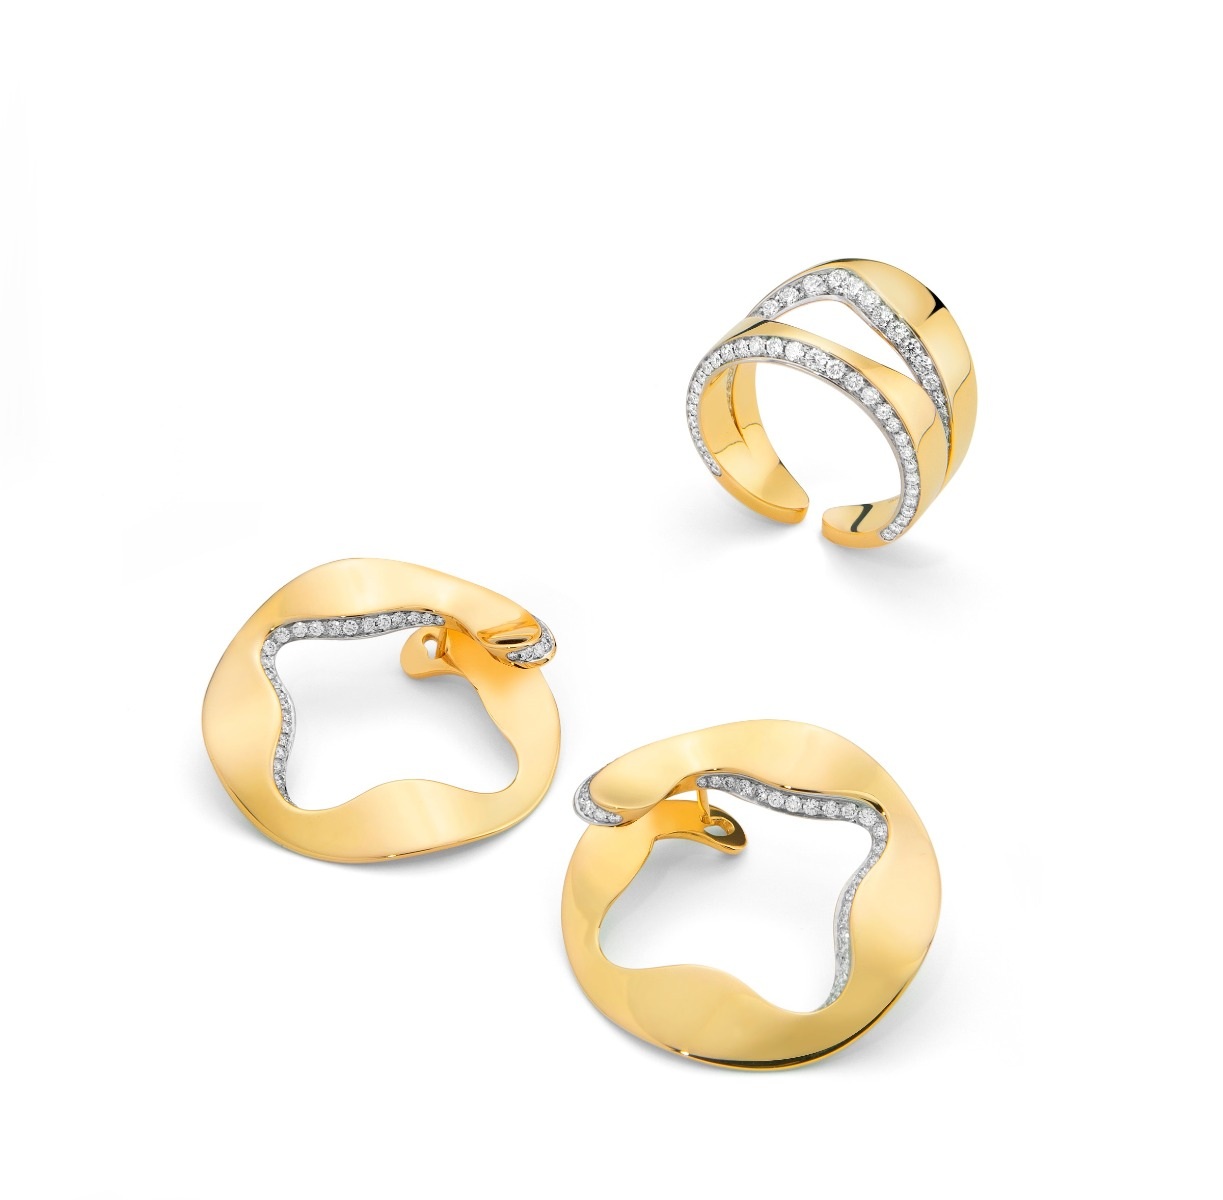 Antonini Anniversary100 collection ring earrings yellow gold and diamonds